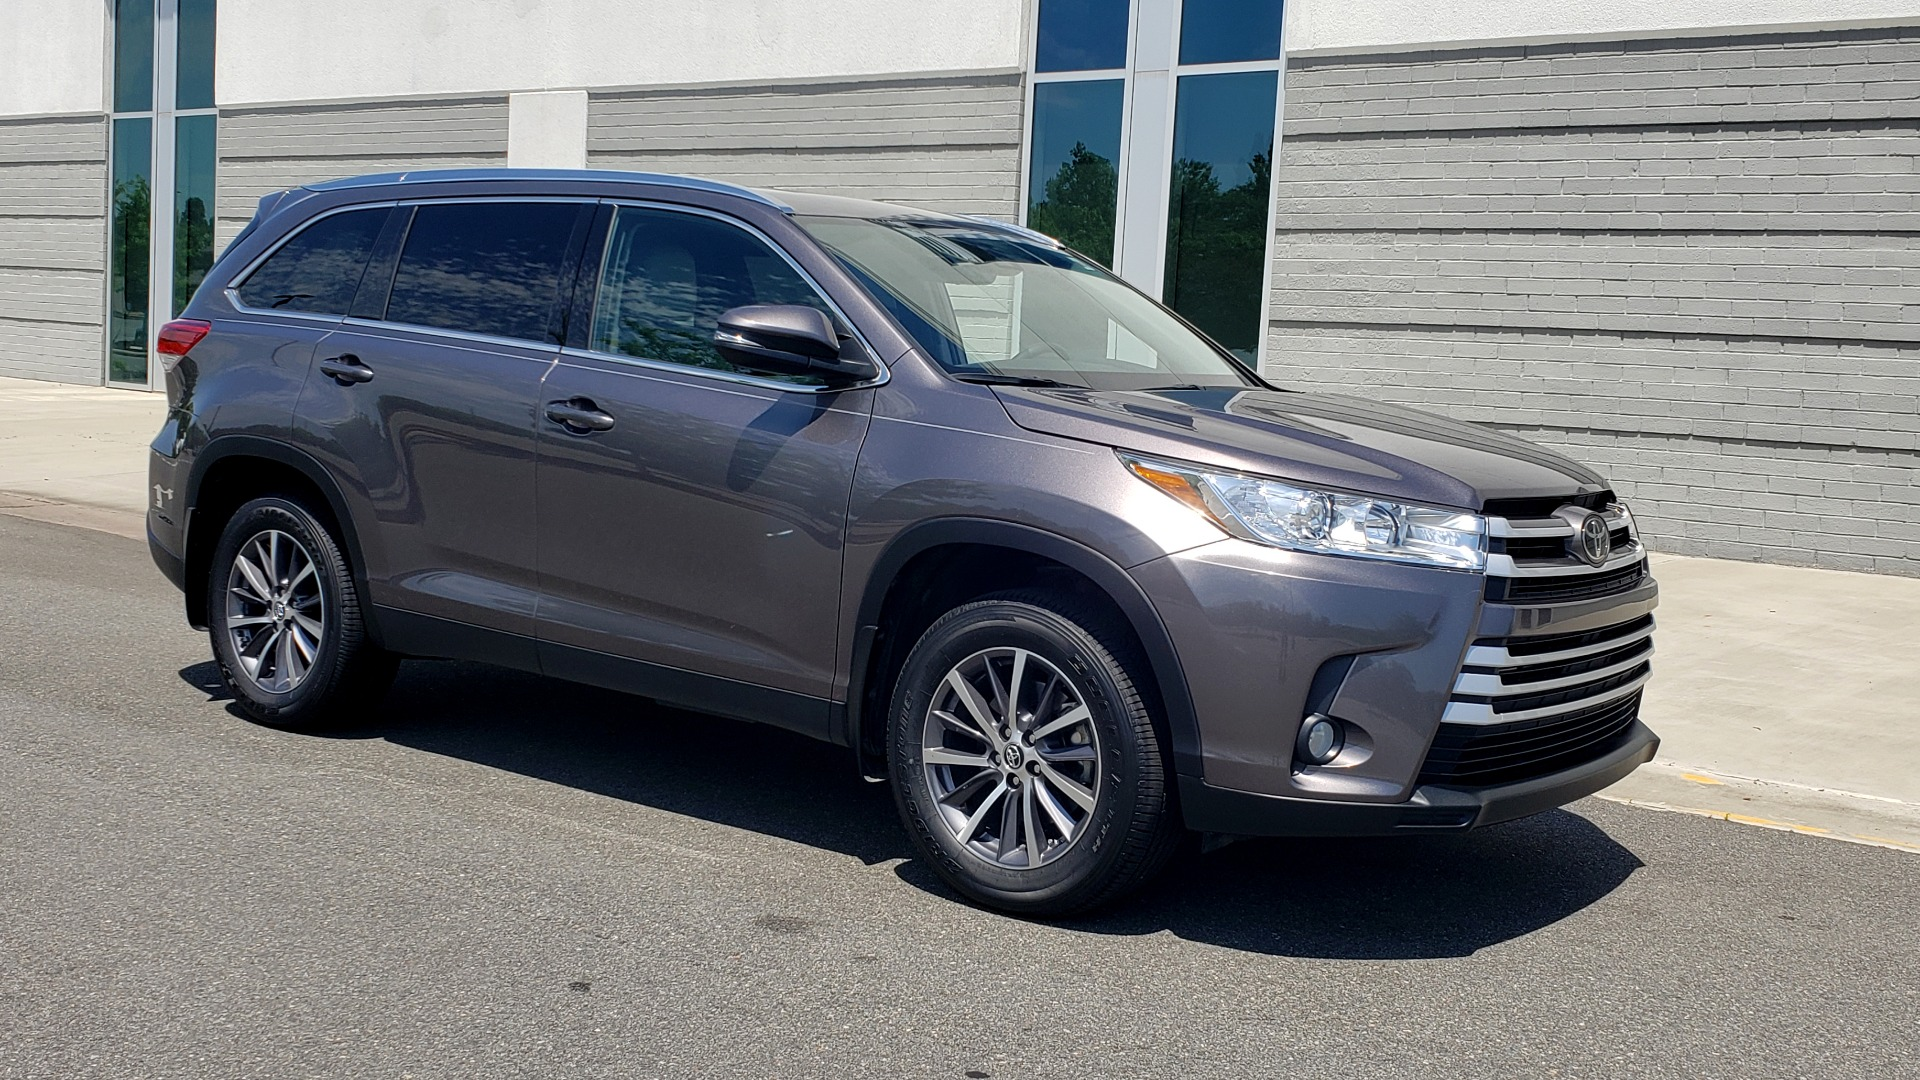 Used 2019 Toyota HIGHLANDER XLE / 3.5L V6 / AWD / LEATHER / 8-SPD AUTO / 1-OWNER for sale $37,500 at Formula Imports in Charlotte NC 28227 7